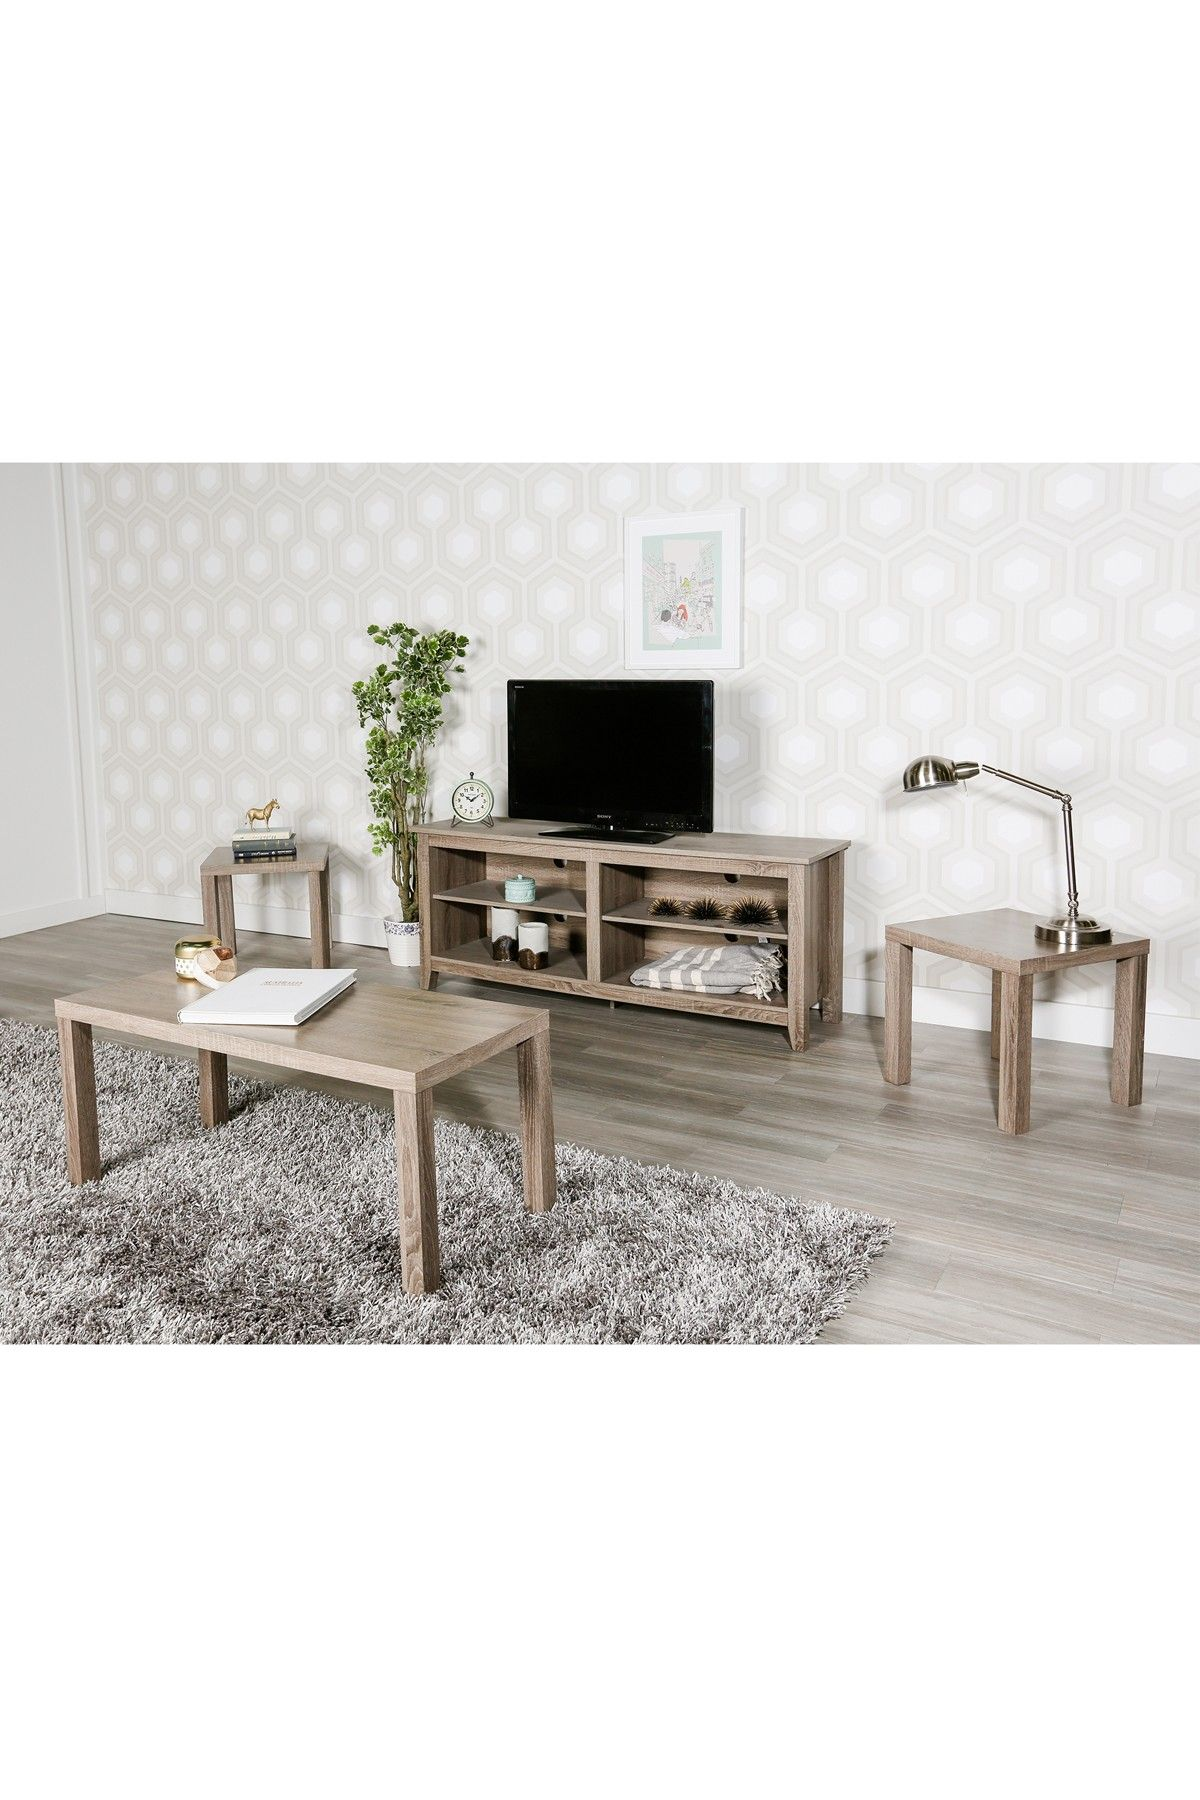 Walker Edison Furniture pany Driftwood Coffee End Table 3 Piece